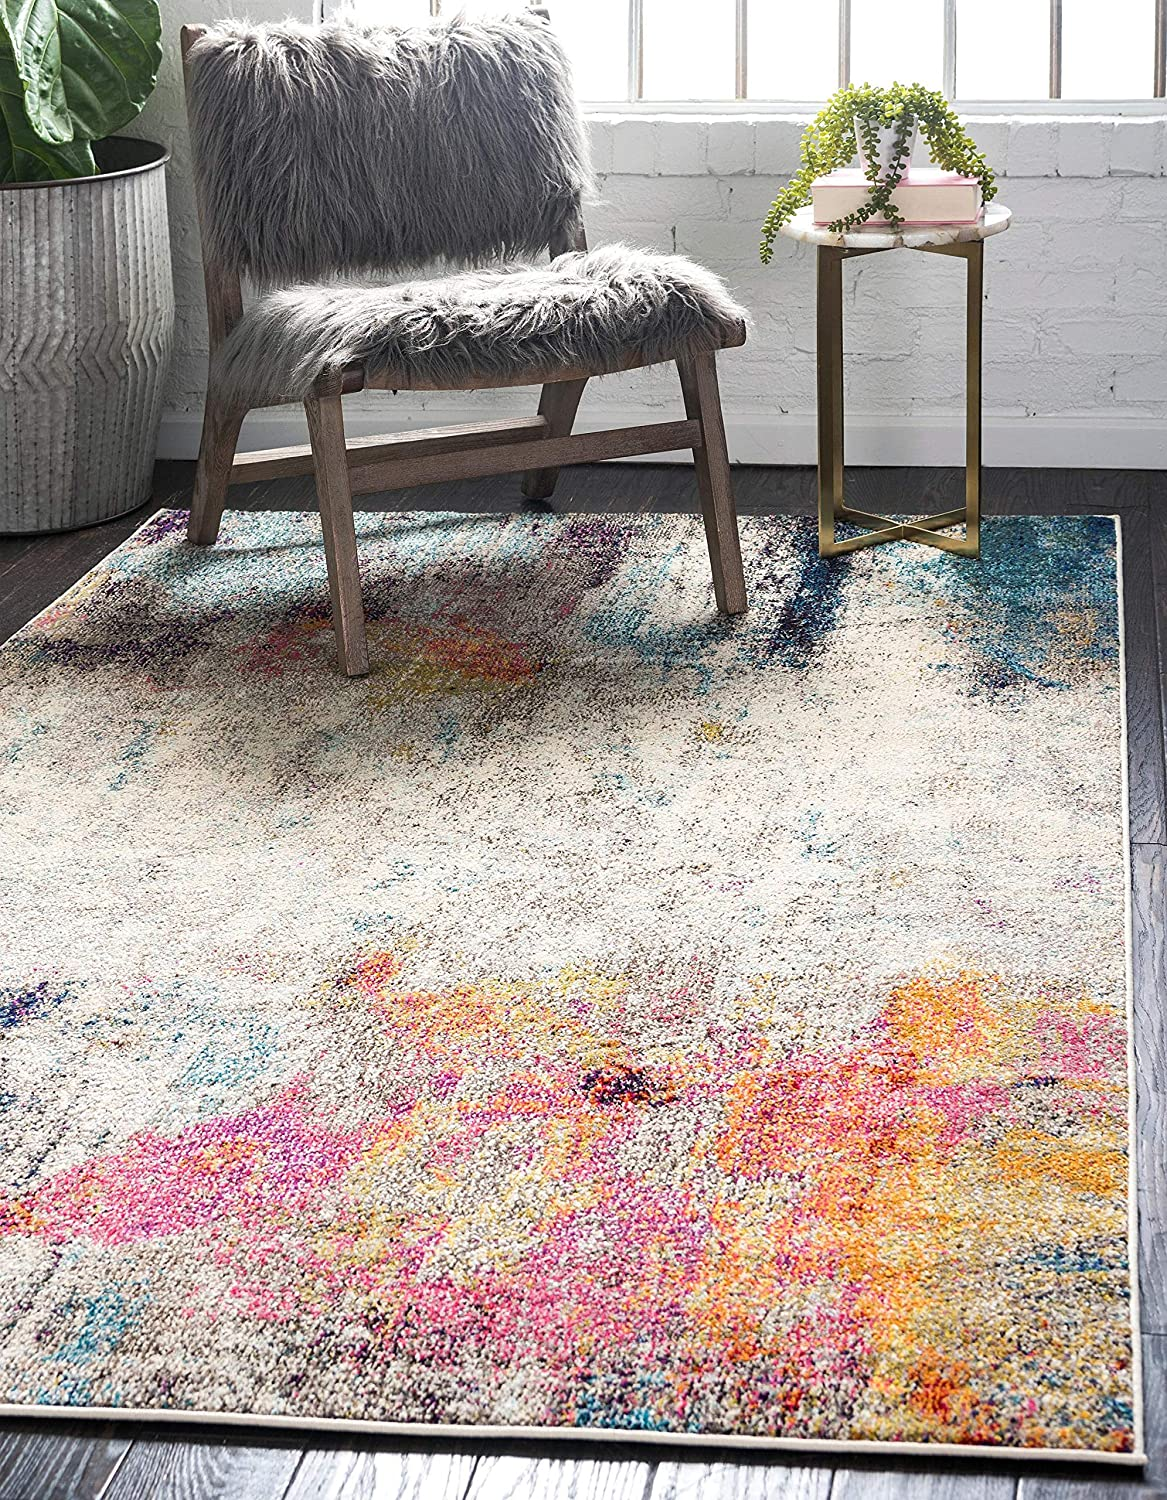 Unique Loom Chromatic Collection Modern Abstract Colorful Beige Area Rug (6' 0 x 9' 0)